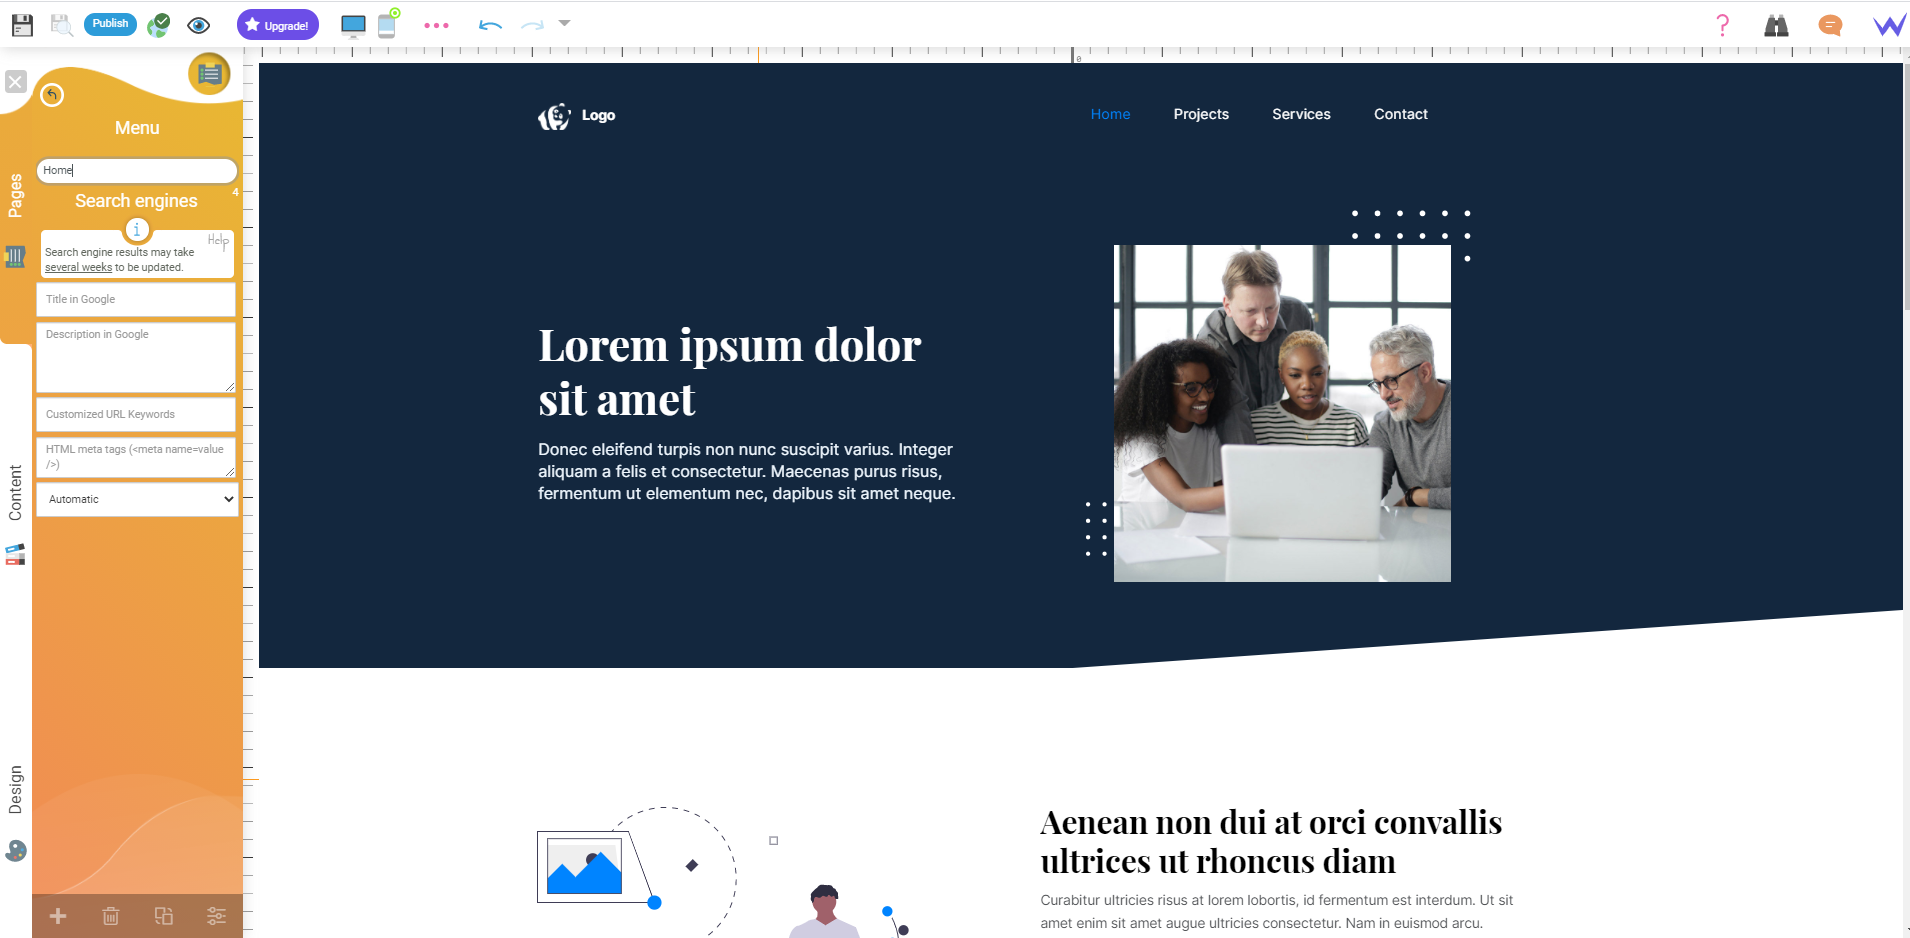 SiteW interface